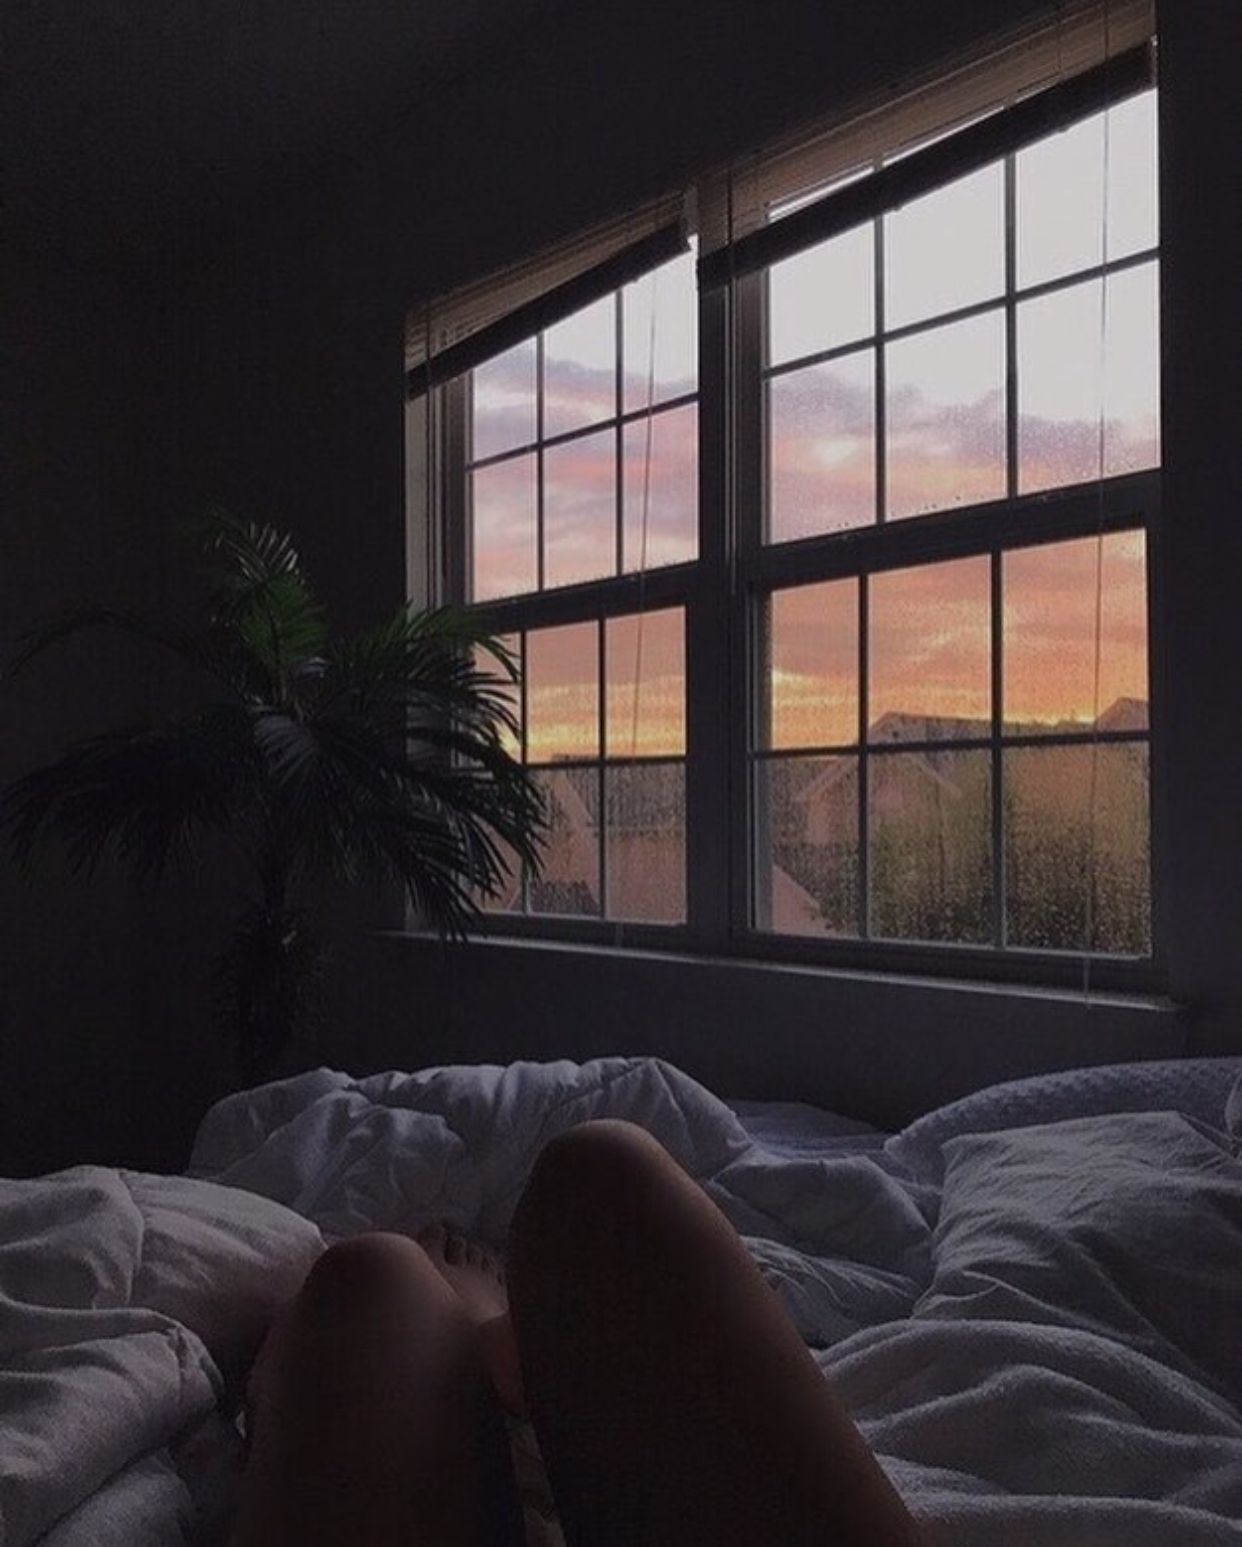 Aesthetic Apartment: Pin By RachelAnne On TUMBLR // COZY☁️☕️